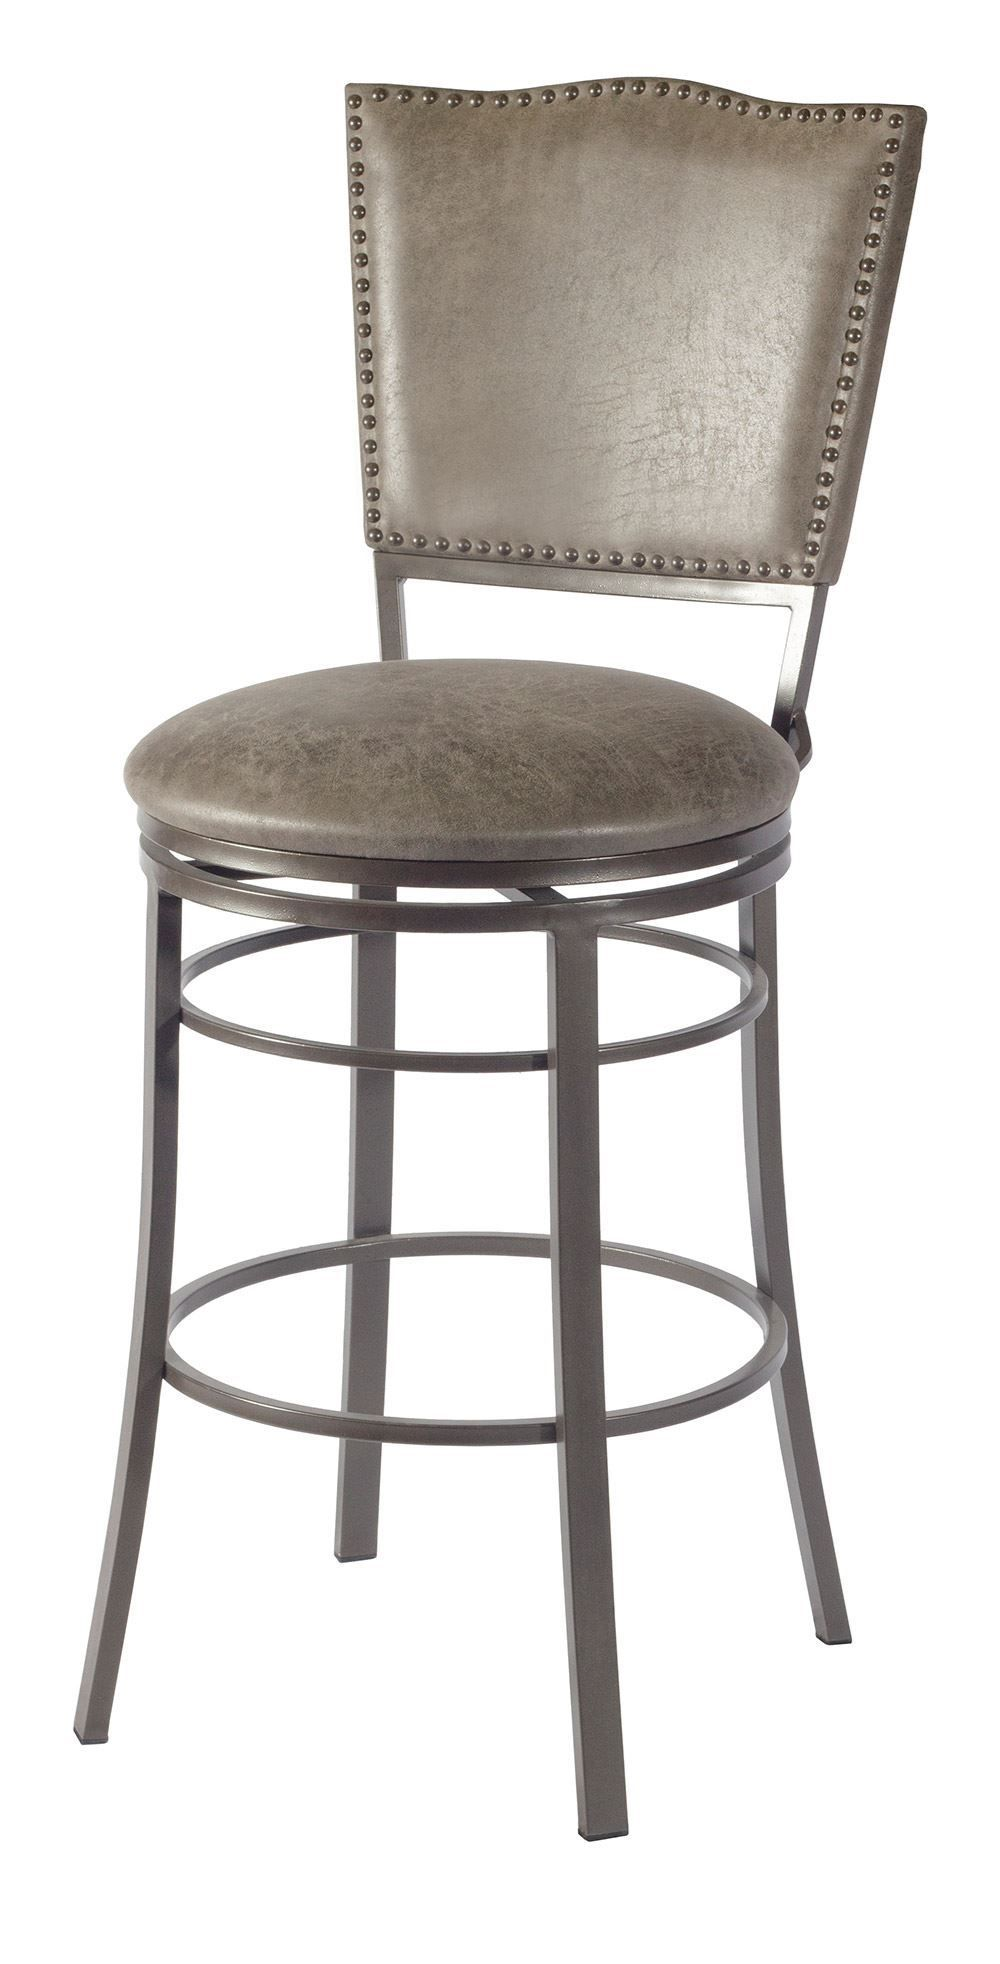 Picture of Samantha Granite 24 Inch Swivel Stool